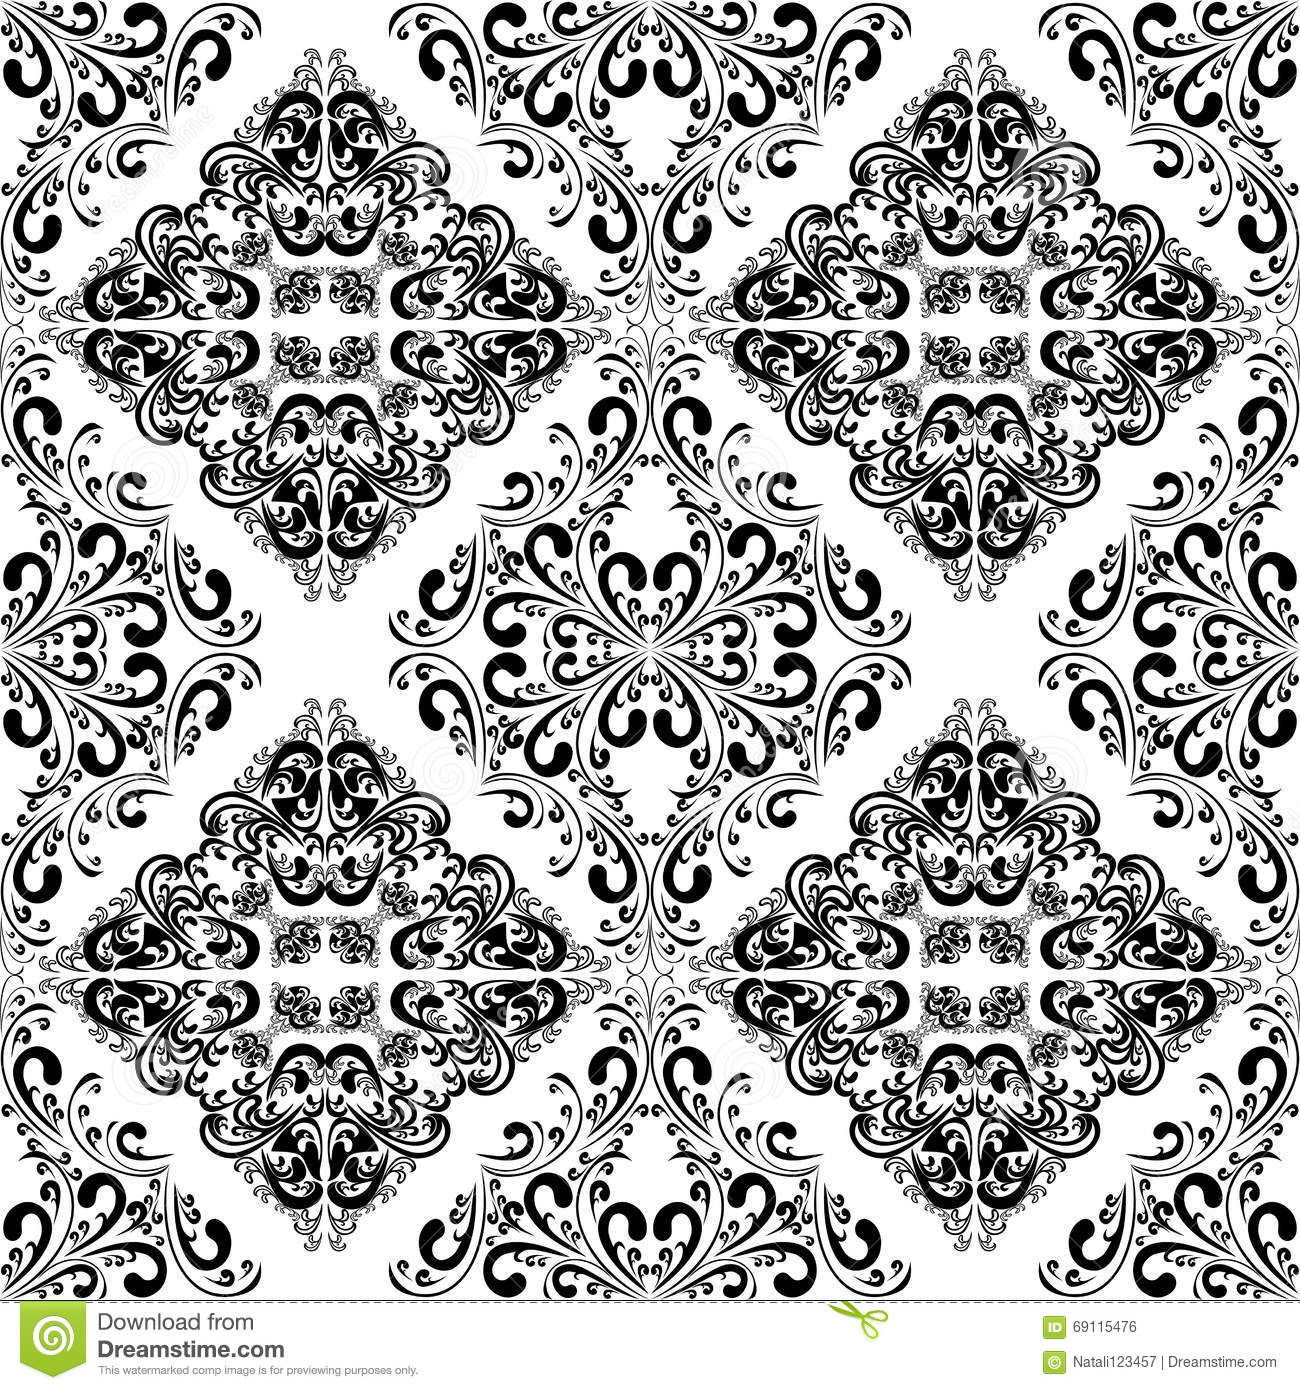 Uncategorized Intricate Pattern seamless intricate pattern design template stock vector image royalty free download pattern